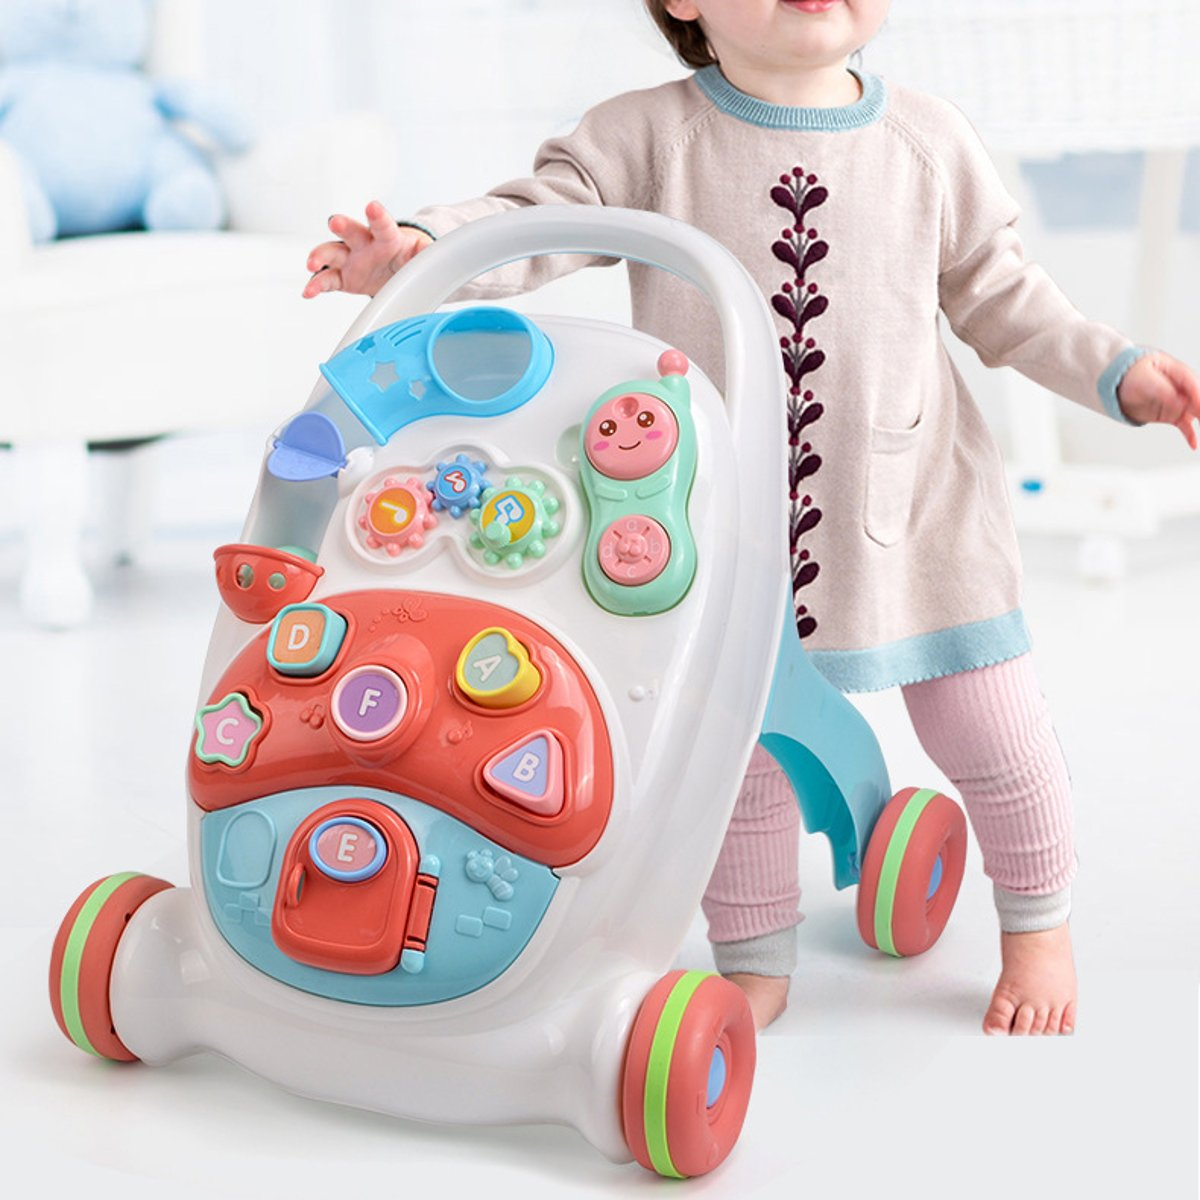 2-in-1 Baby Walker Toys Multifuctional Non-slip Toddler Trolley Sit-to-Stand ABS Musical Walker With Water Tank for Toddler